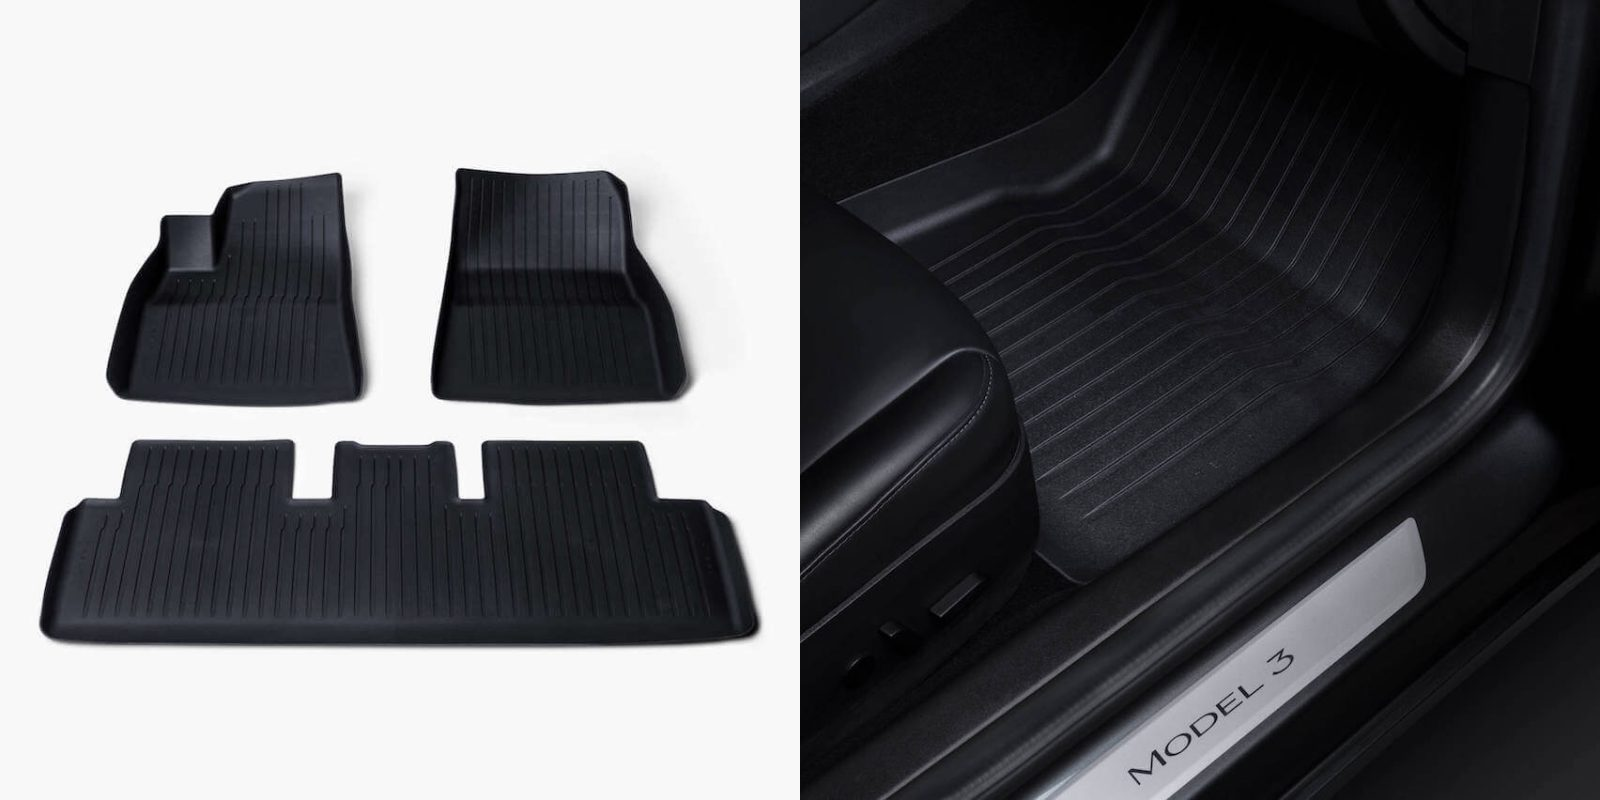 Tesla launches new and better Model 3 floor mats made of recyclable material